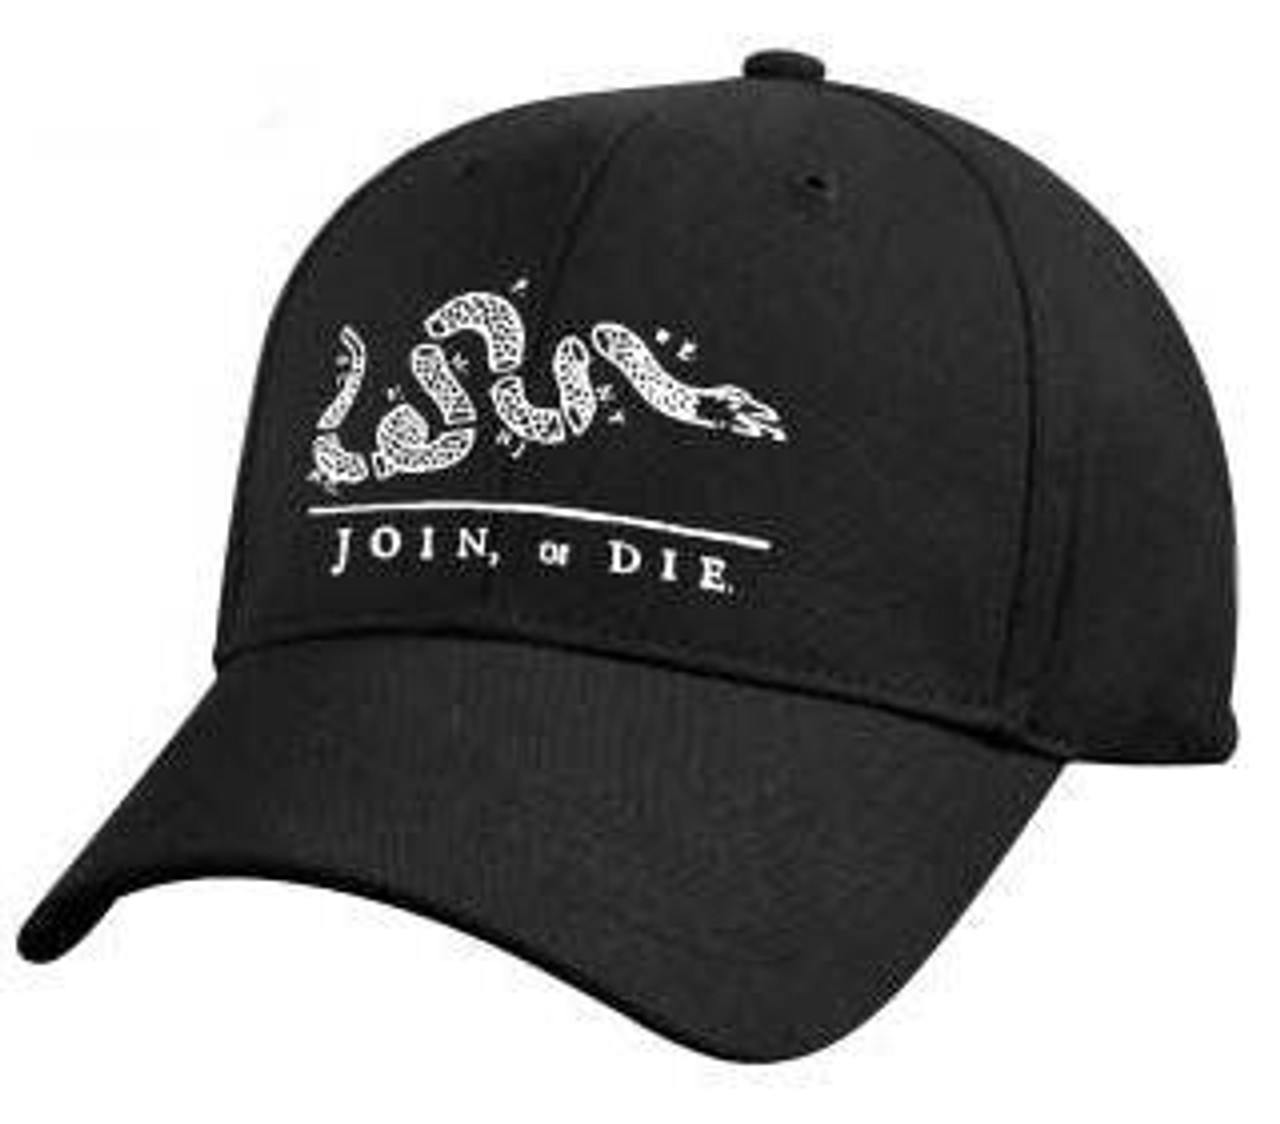 'Join Or Die' Deluxe Low Profile Cap from Hessen Antique